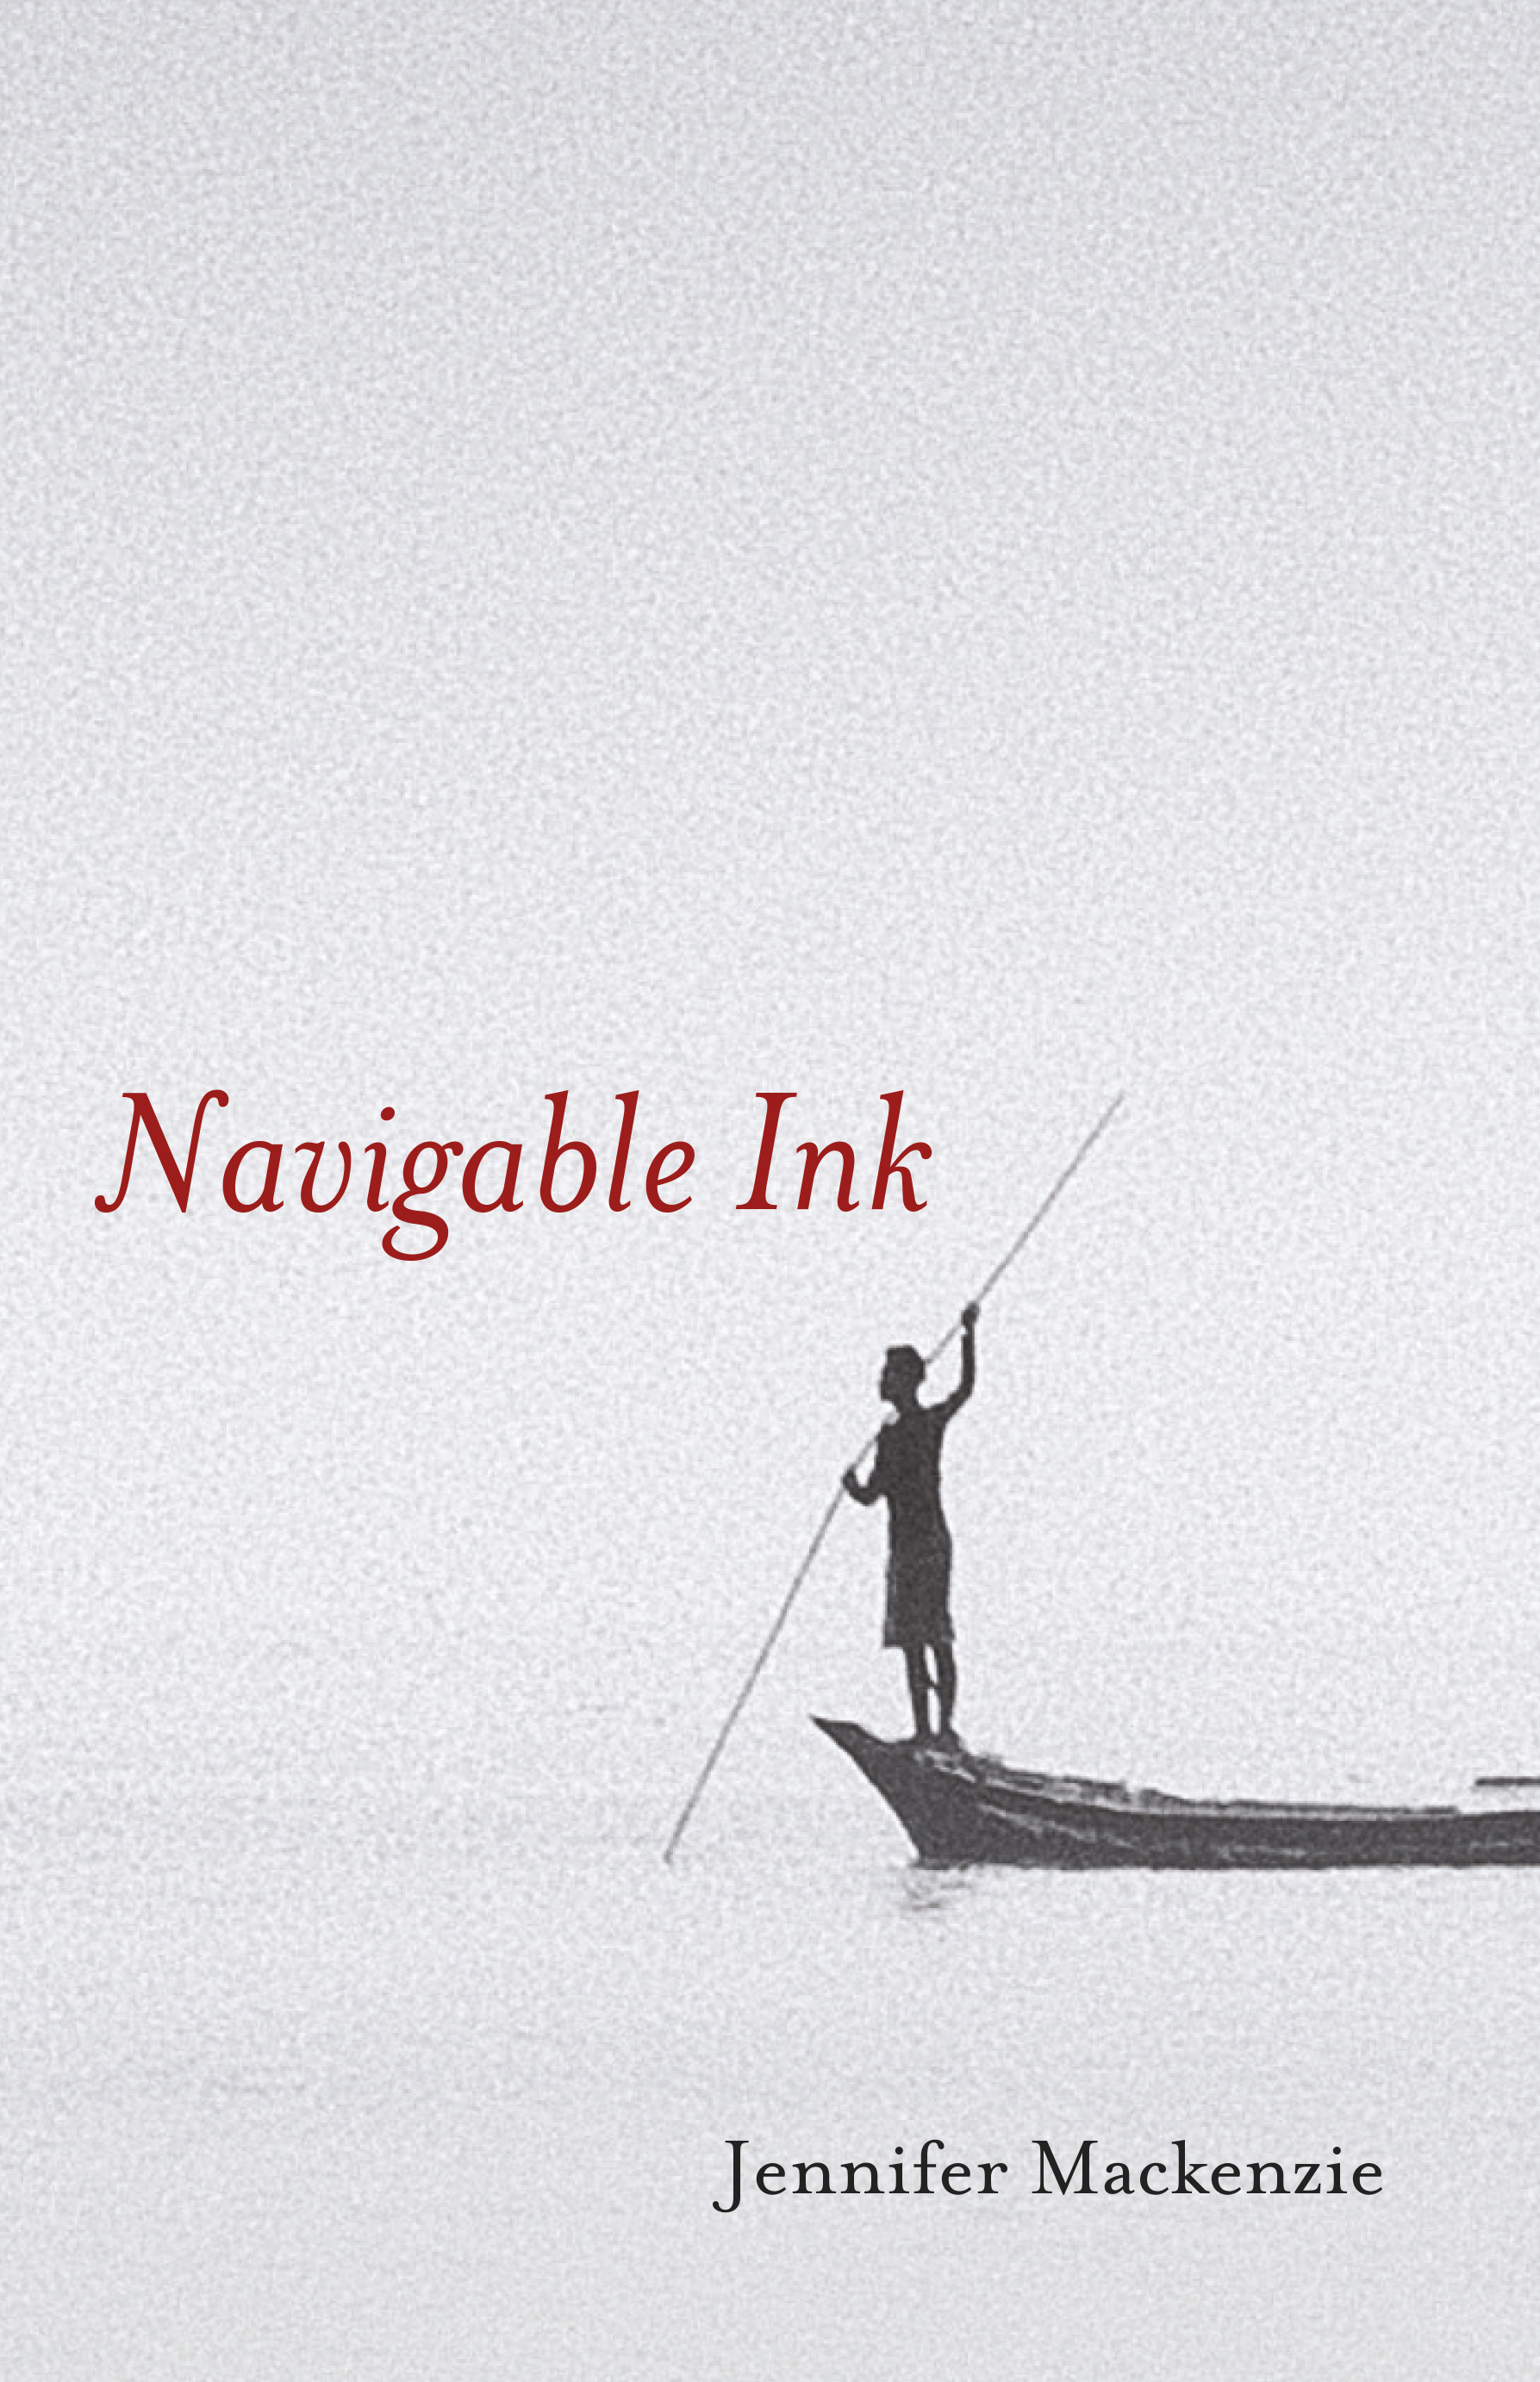 Launch of Navigable Ink by Jennifer Mackenzie